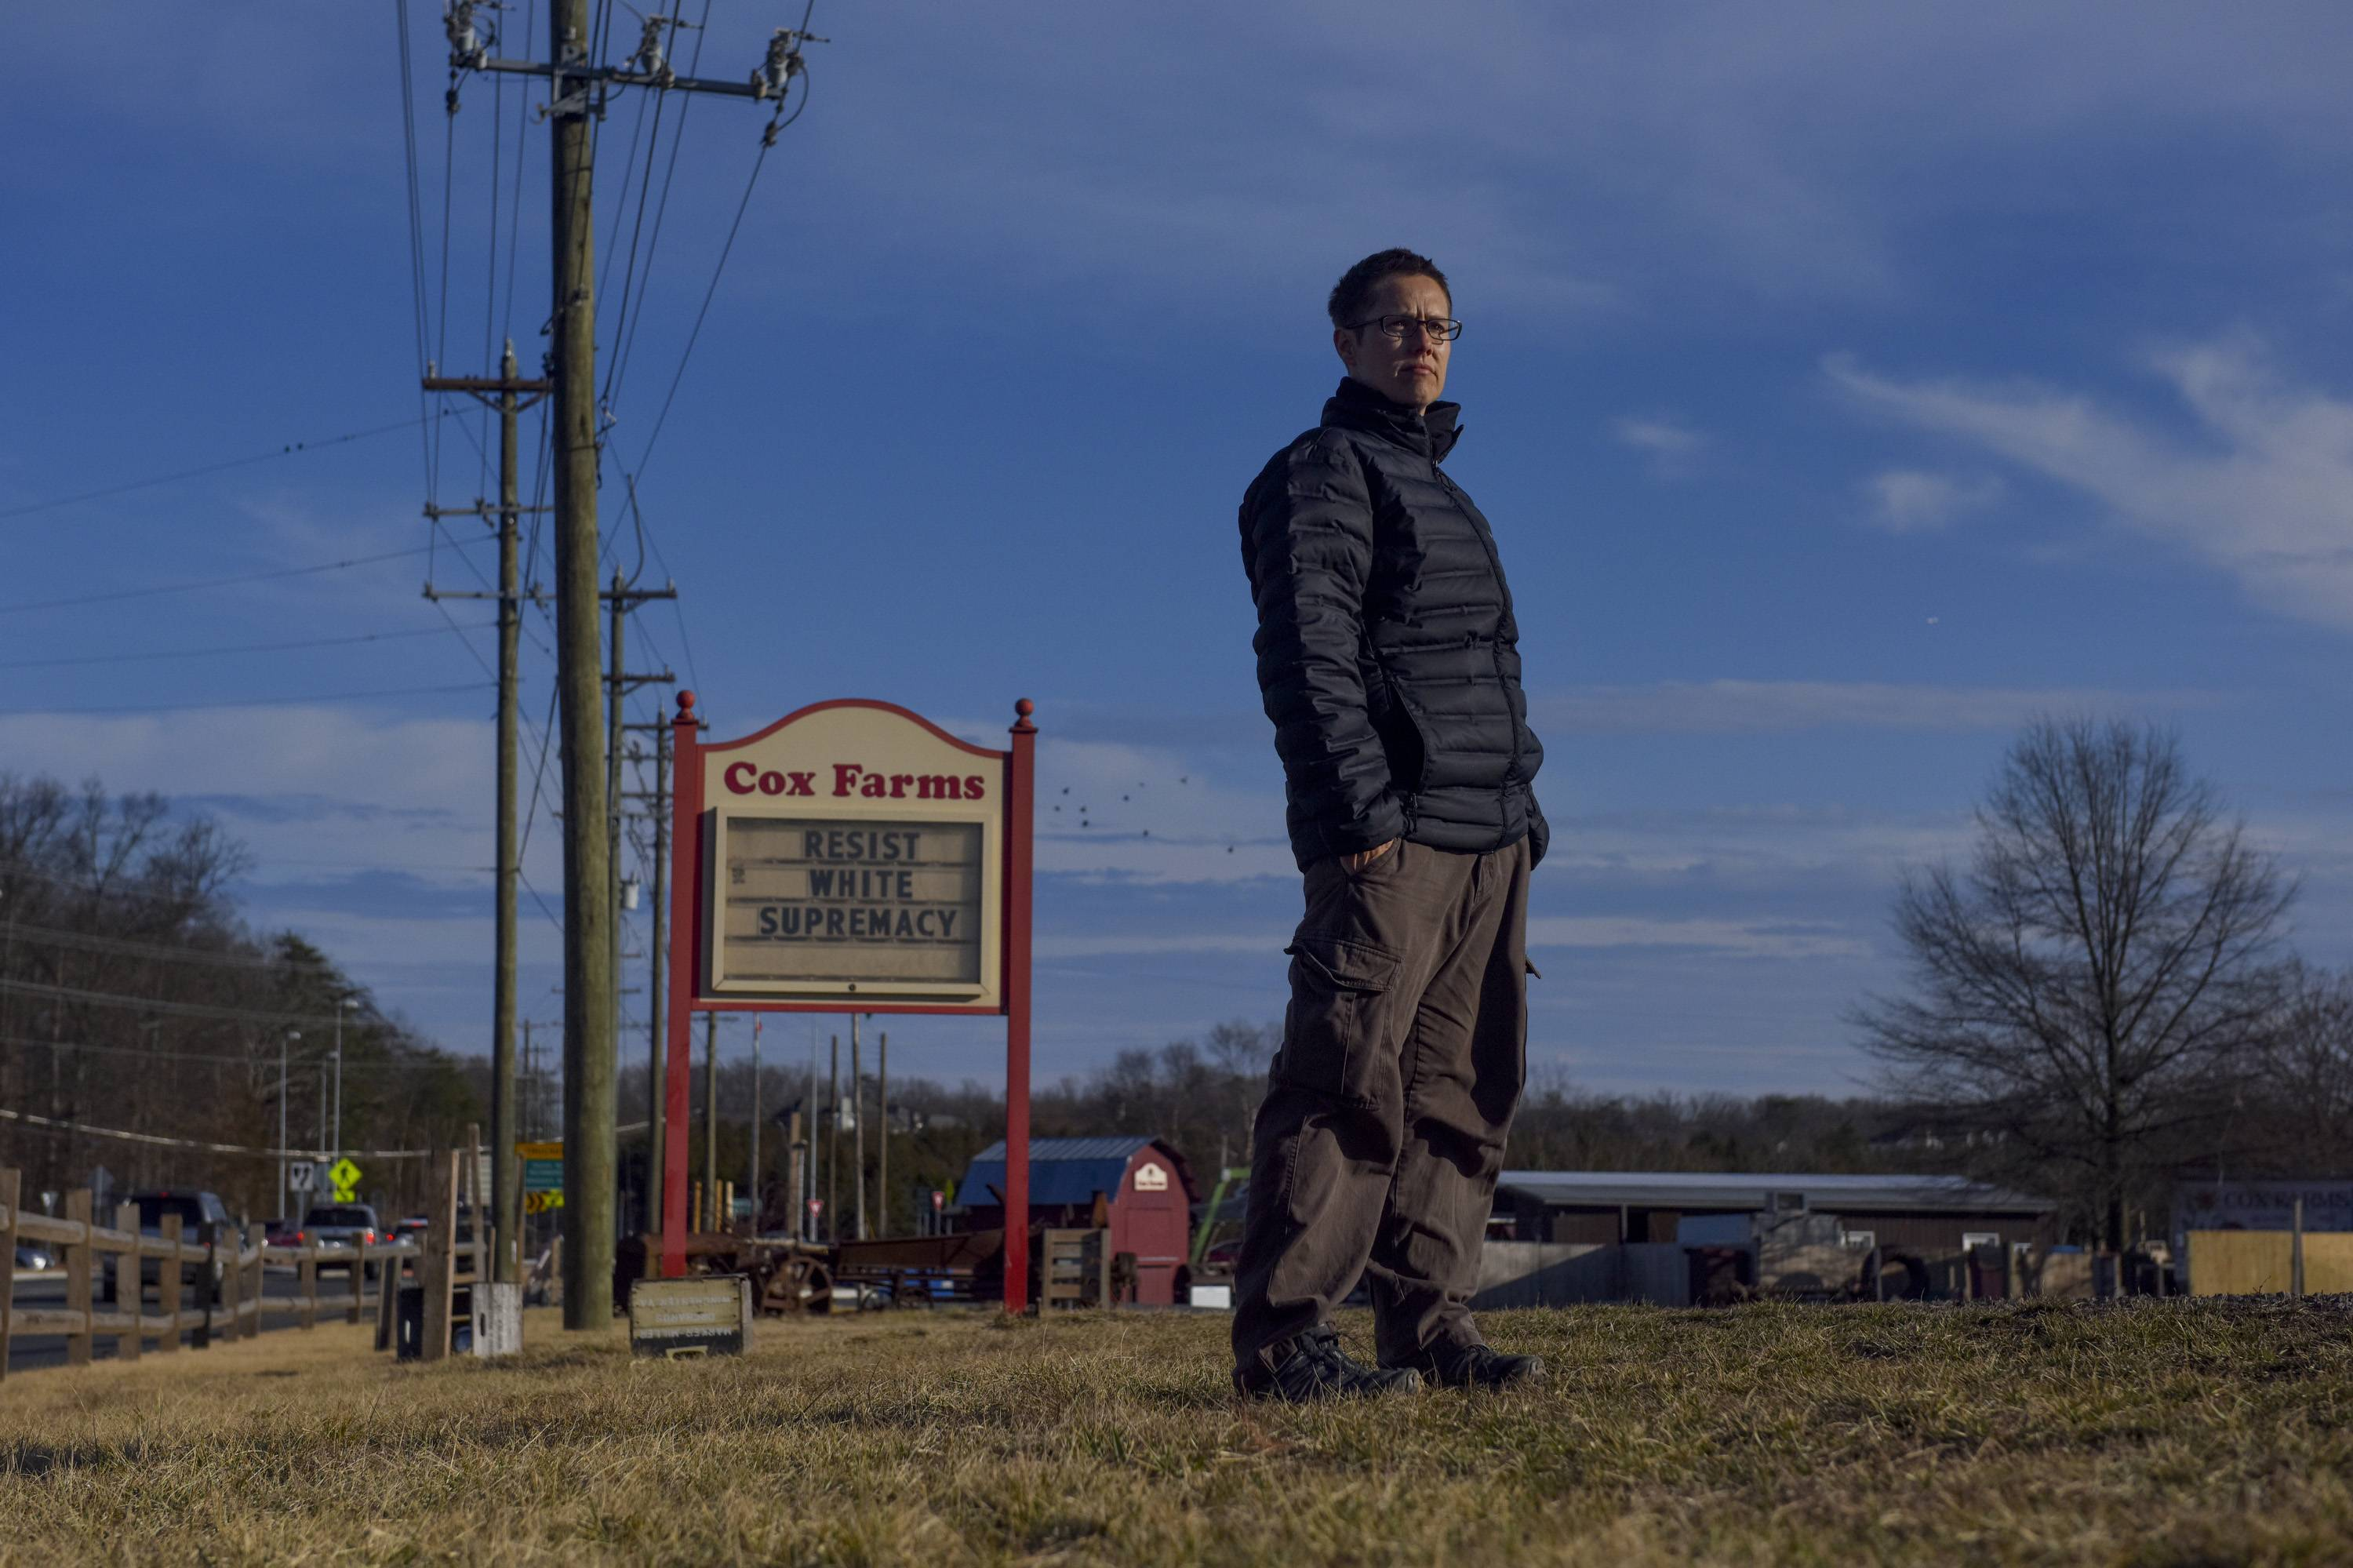 Aaron Cox-Leow stands on her family's farm in Centreville, Virginia, near the sign that has caused a furor on social media.